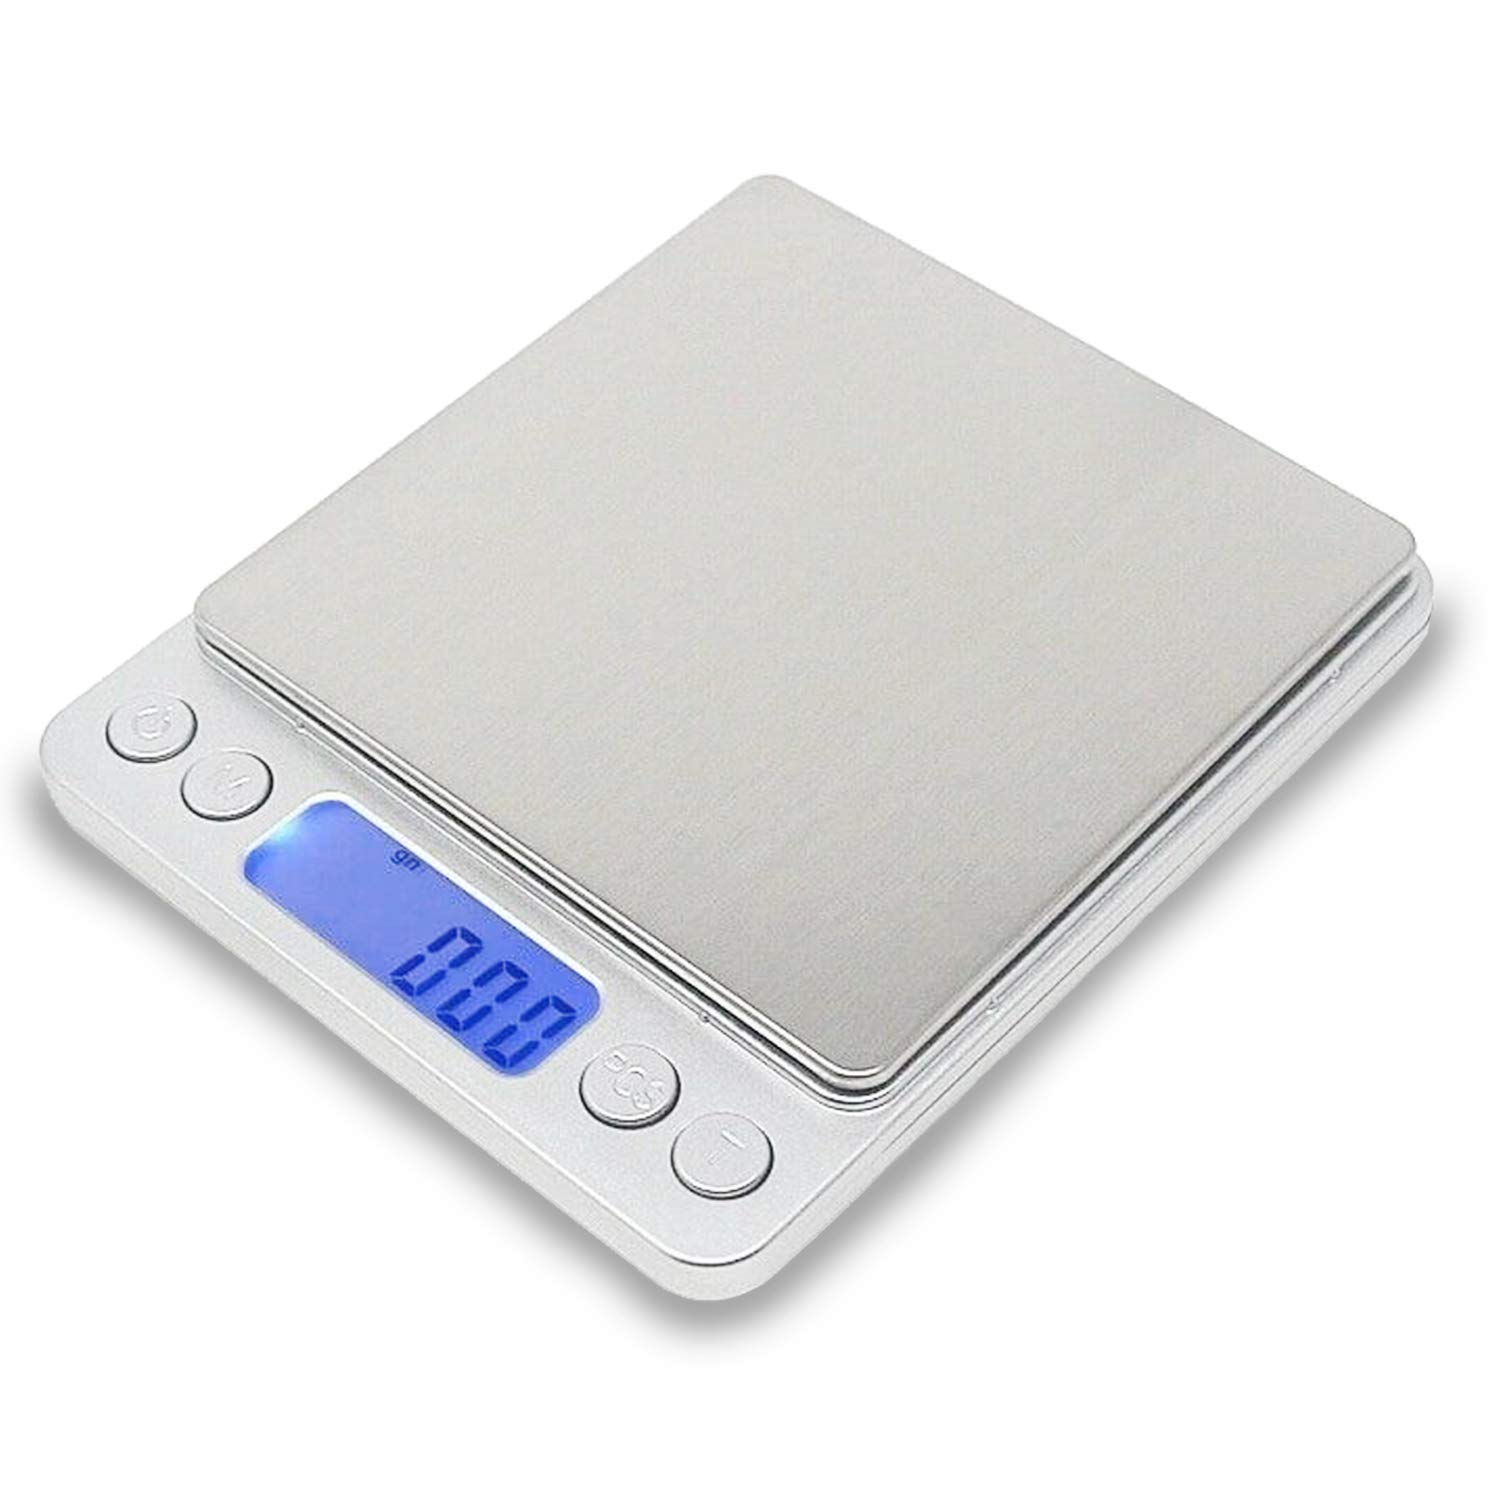 3000g x 0.1g High Super sale period limited Precision Counting Digital Portable Scale LCD Minneapolis Mall